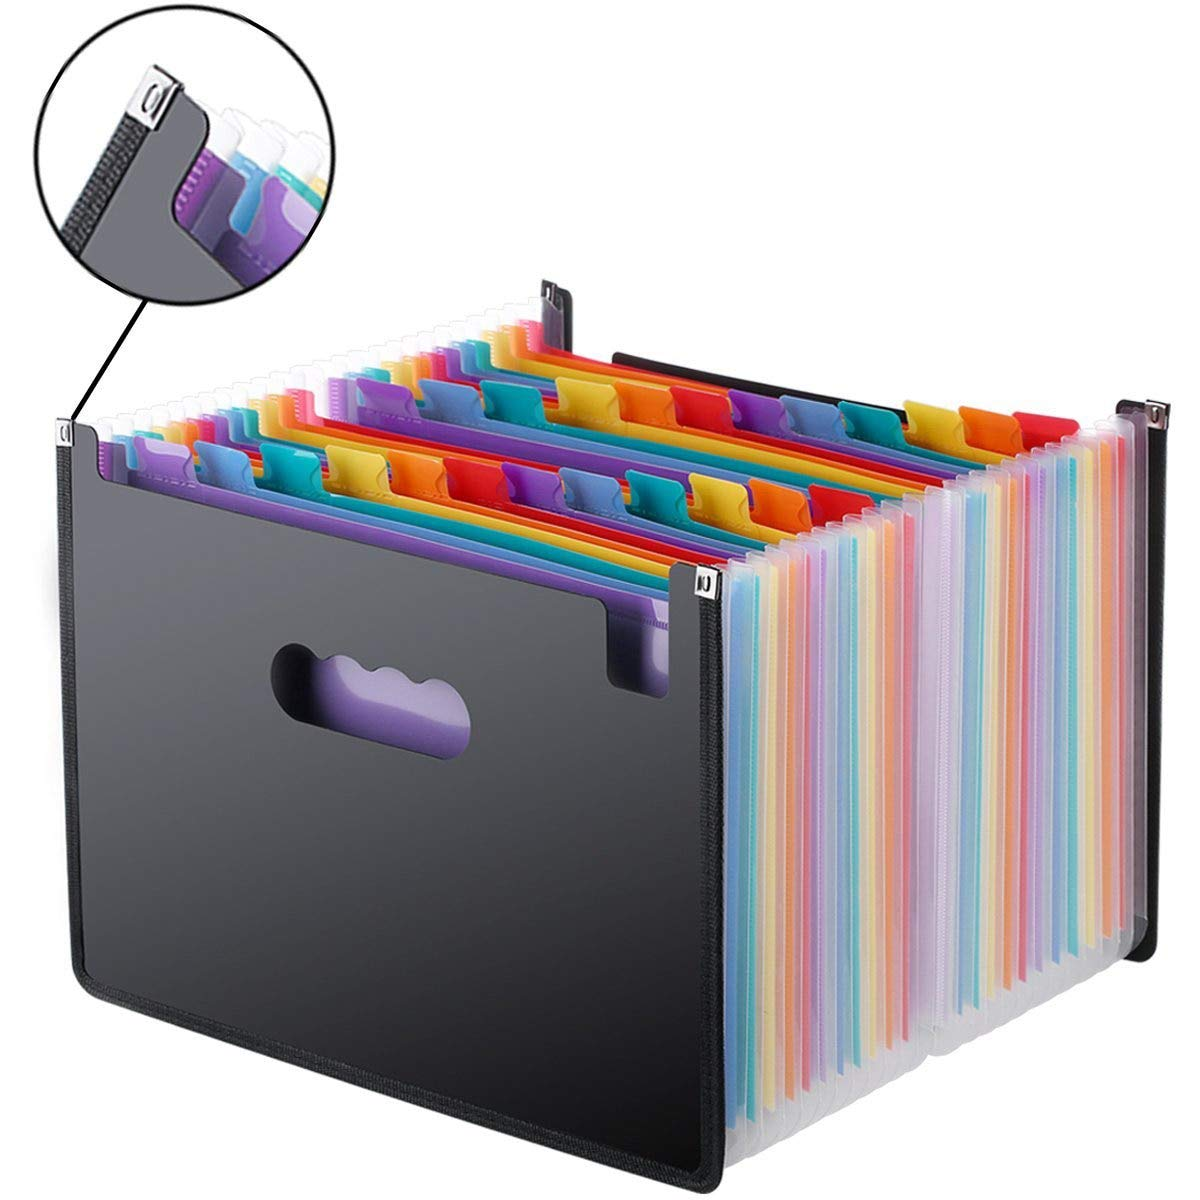 Leo-4Beauty - Sale 24 Pockets Expanding File Folder A4 Organizer Portable Business File Office Supplies Document Holder Carpeta Archivador - - Amazon .com